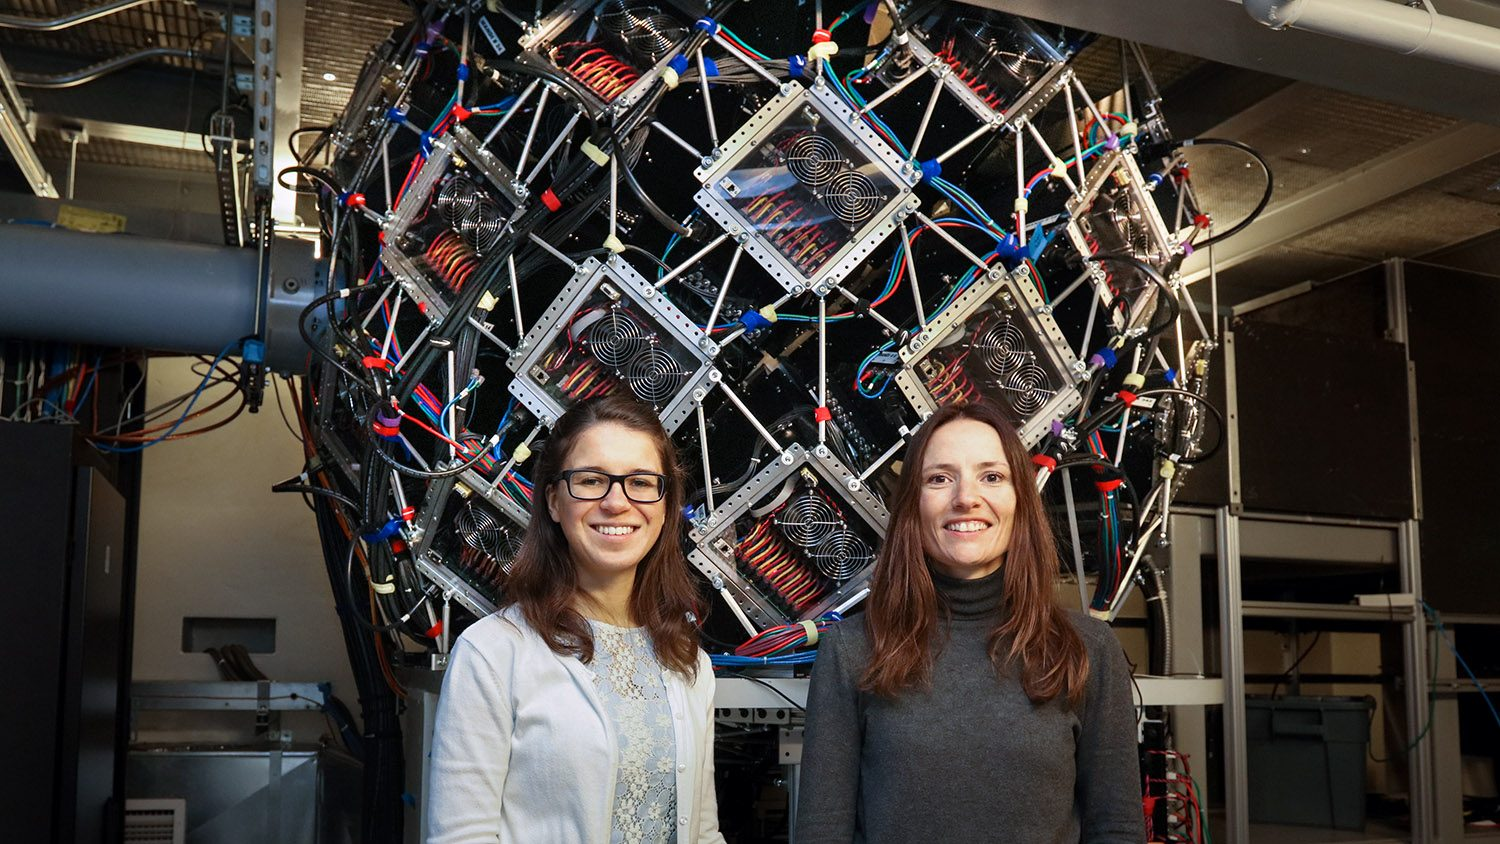 CALS Ph.D. student Gabriela Schroder and CALS professor of biochemistry FLora Meilleur stand in front of a complicated machine at ORNL.